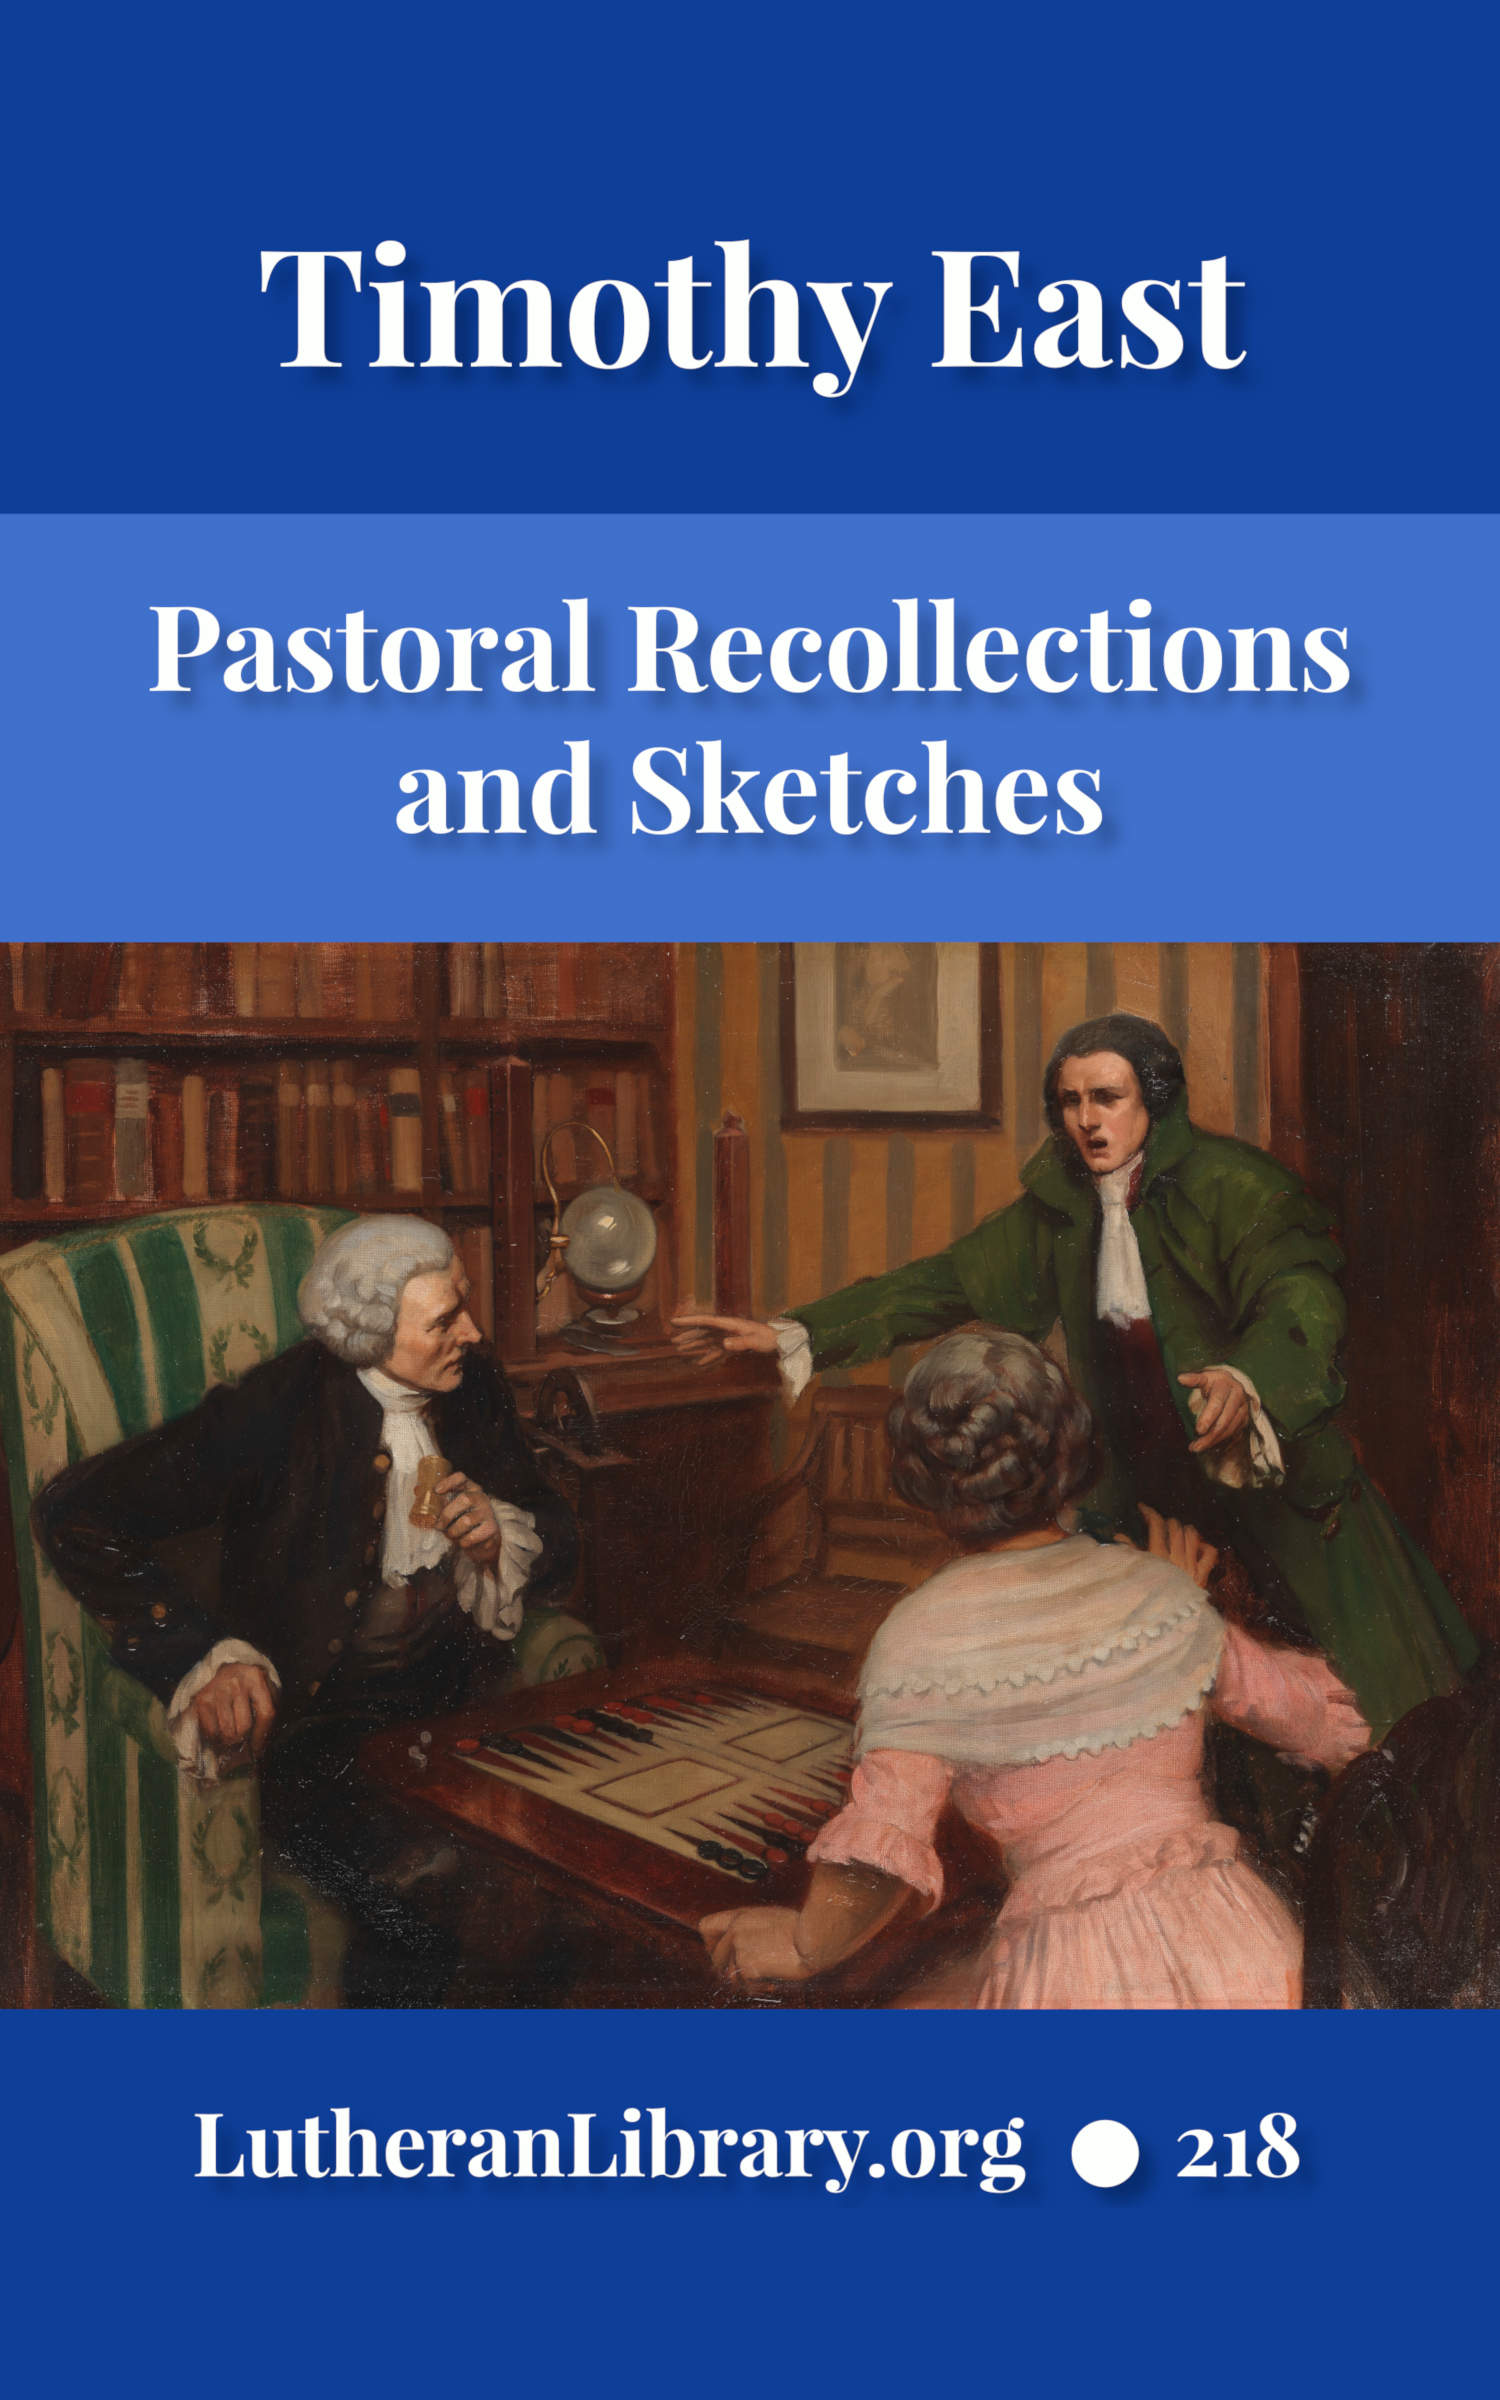 Pastoral Recollections and Sketches by Timothy East